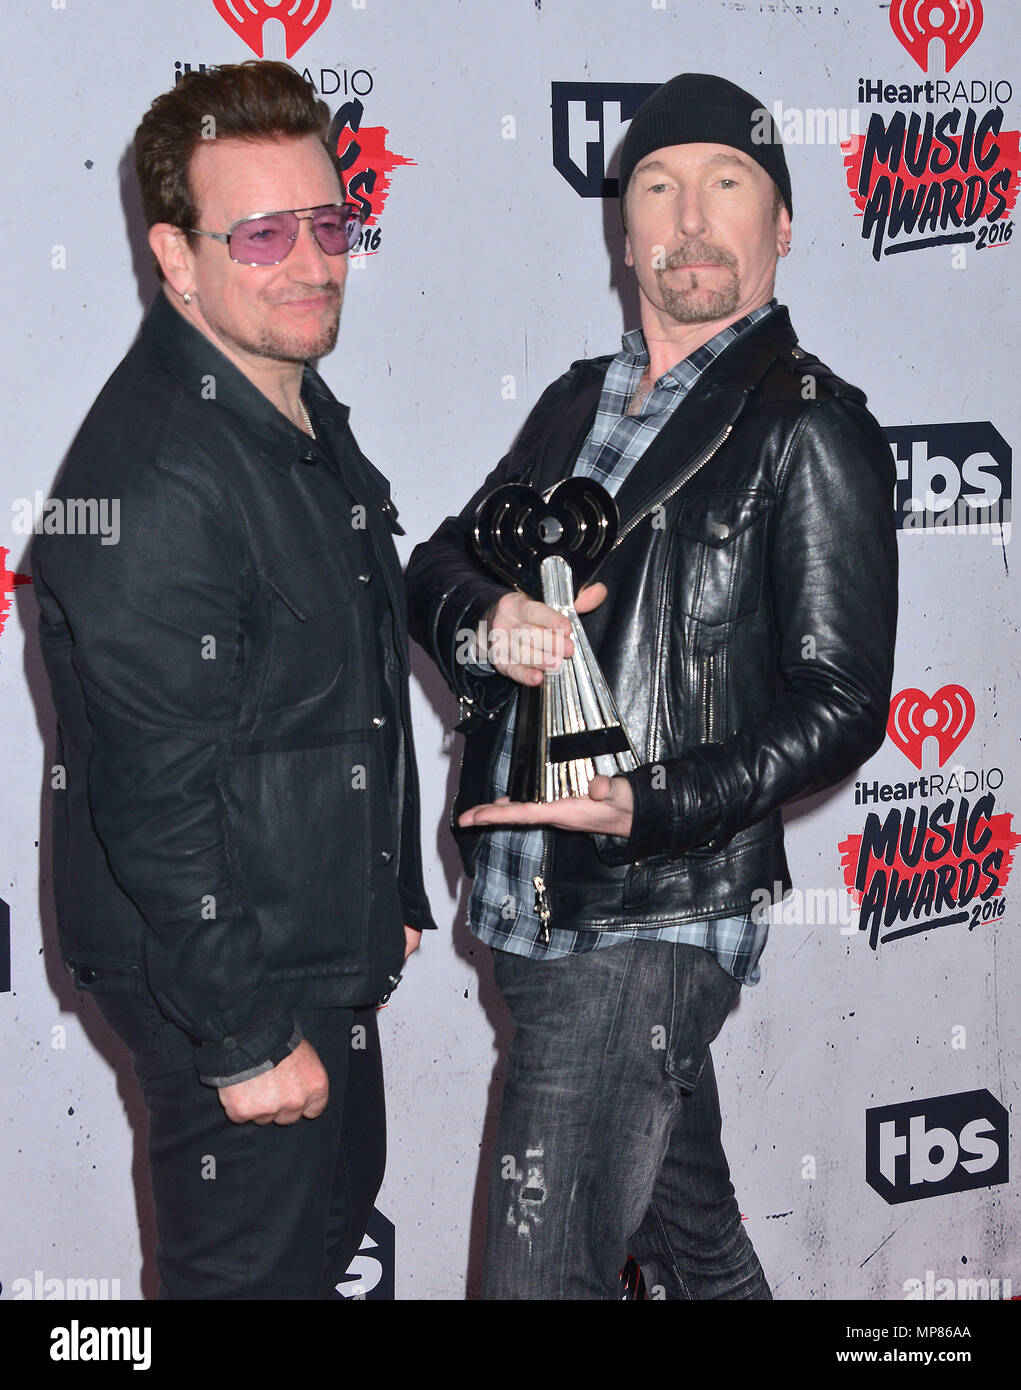 a Bono, The Edge 029 at the 2016 iHeartRadio Music Awards at the